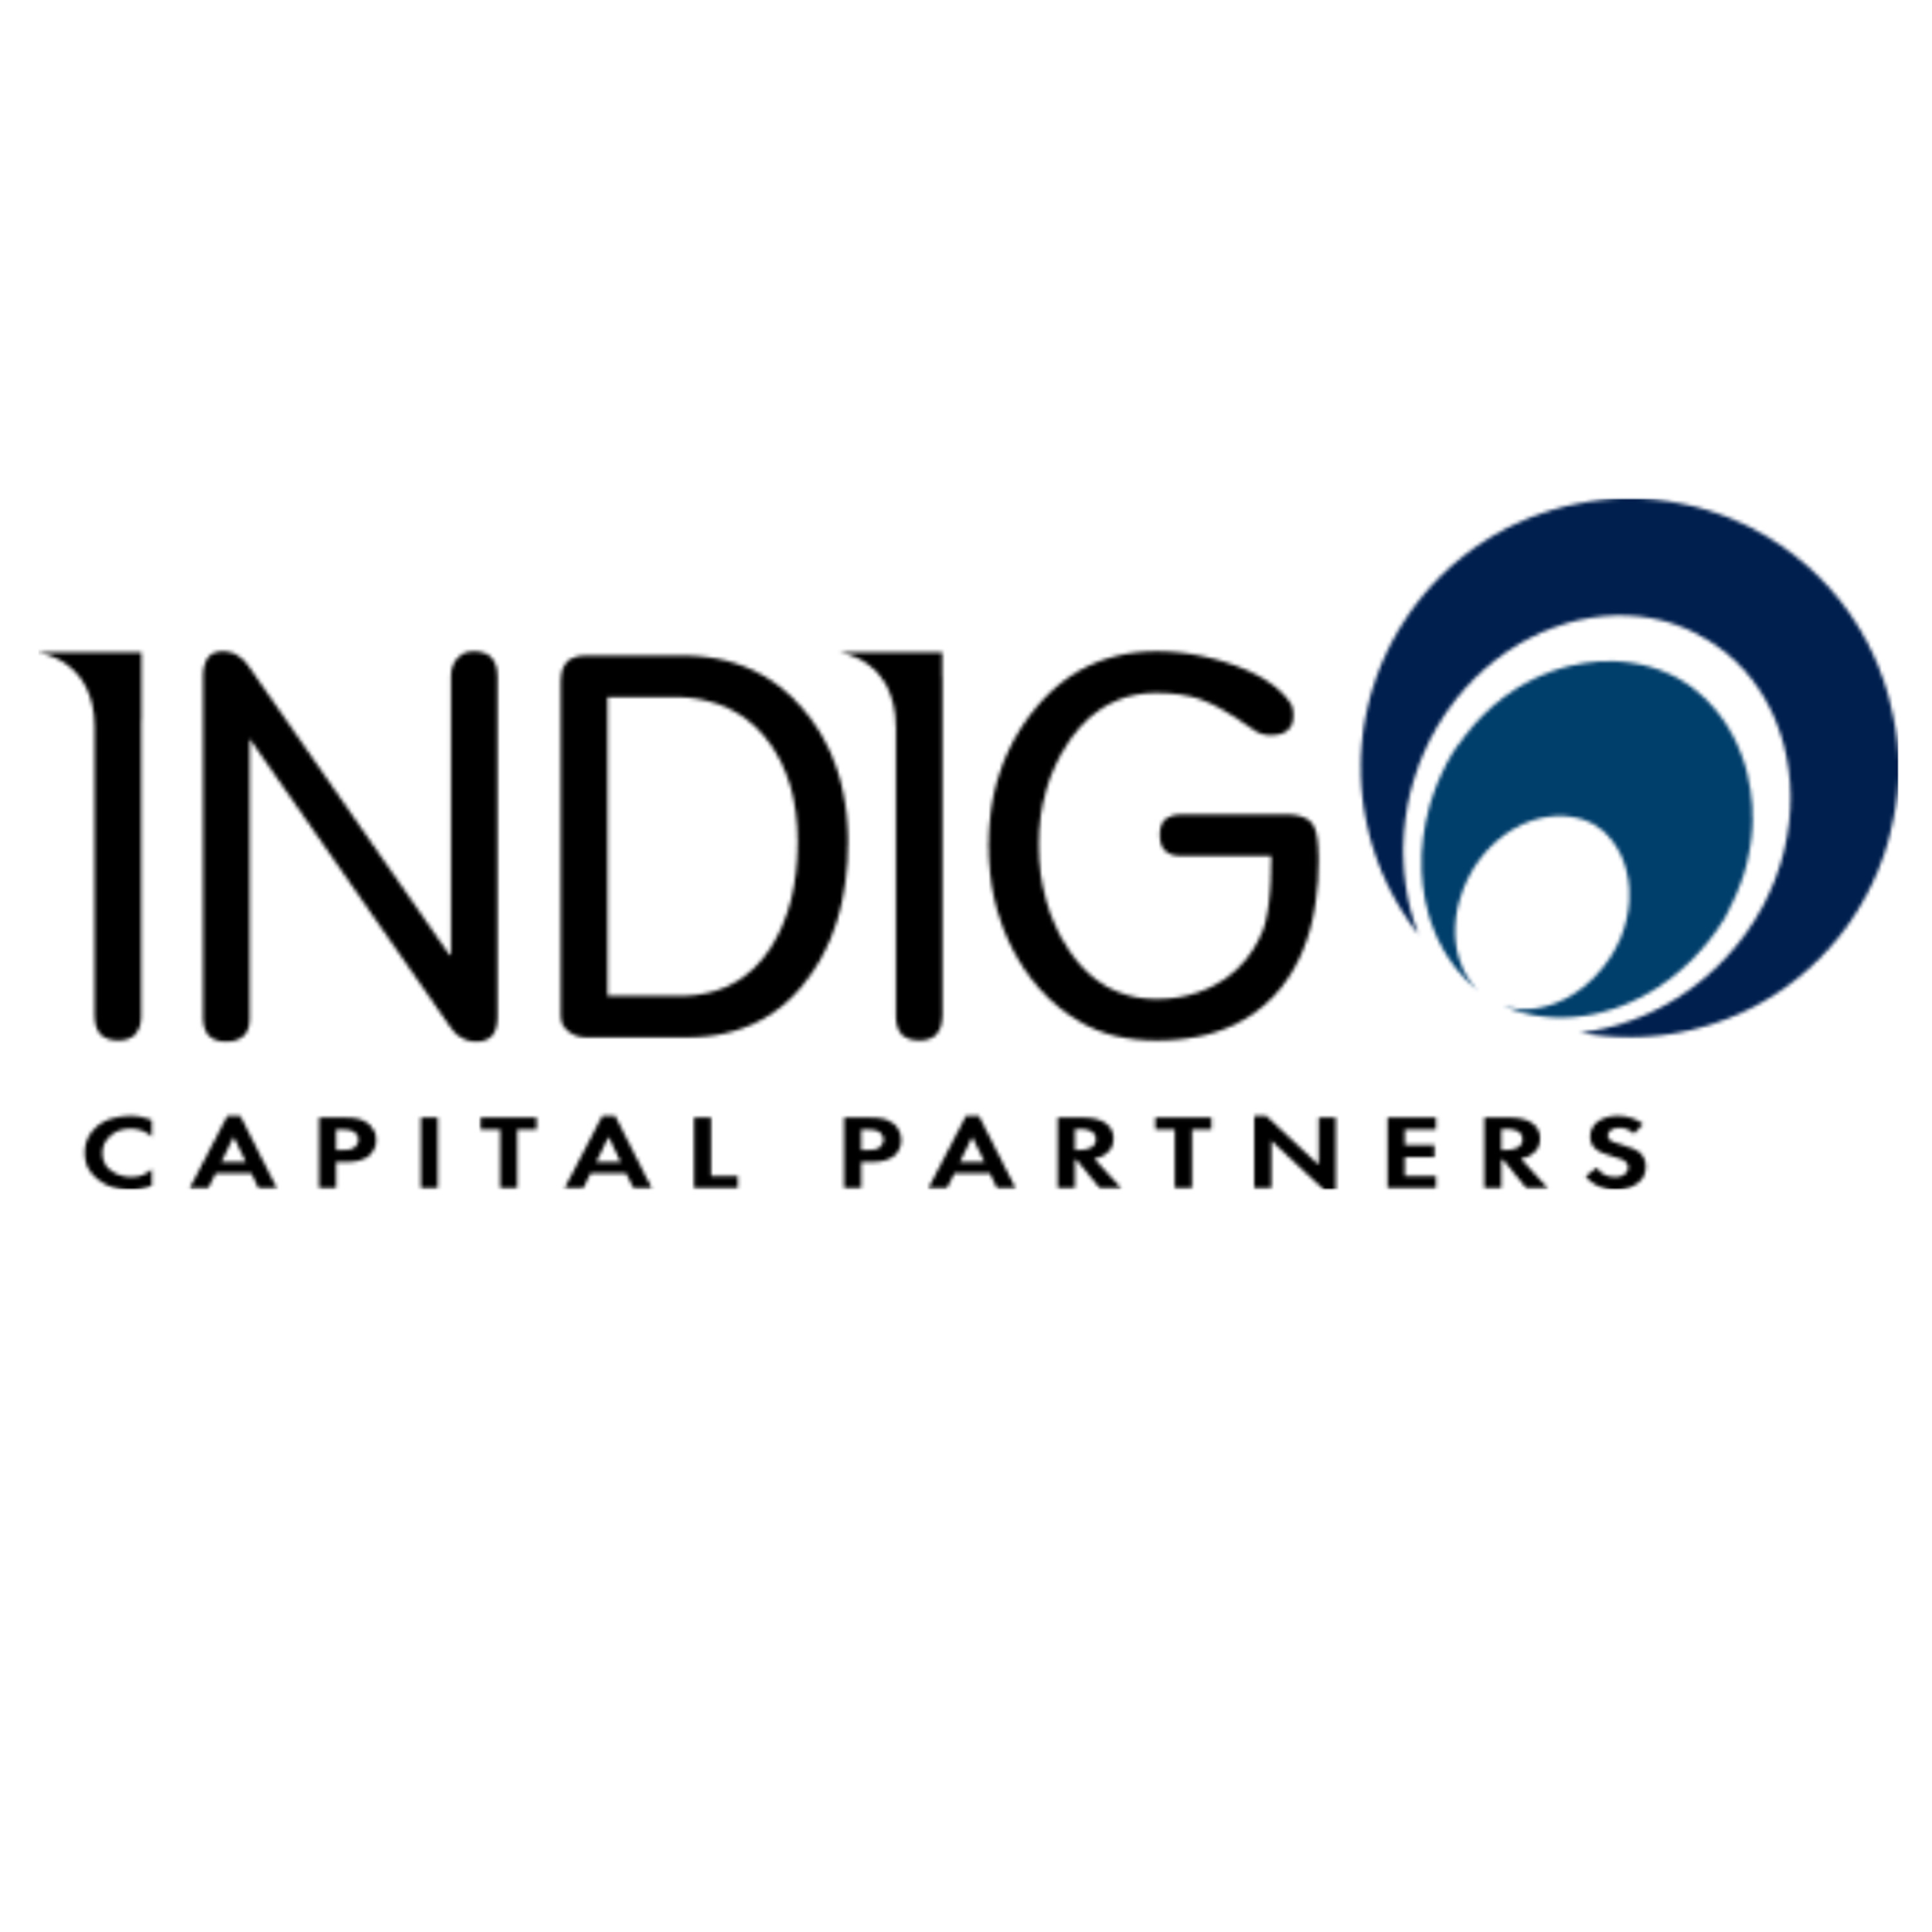 Indigo Capital Partners - Private equity fund with SportsTech focus